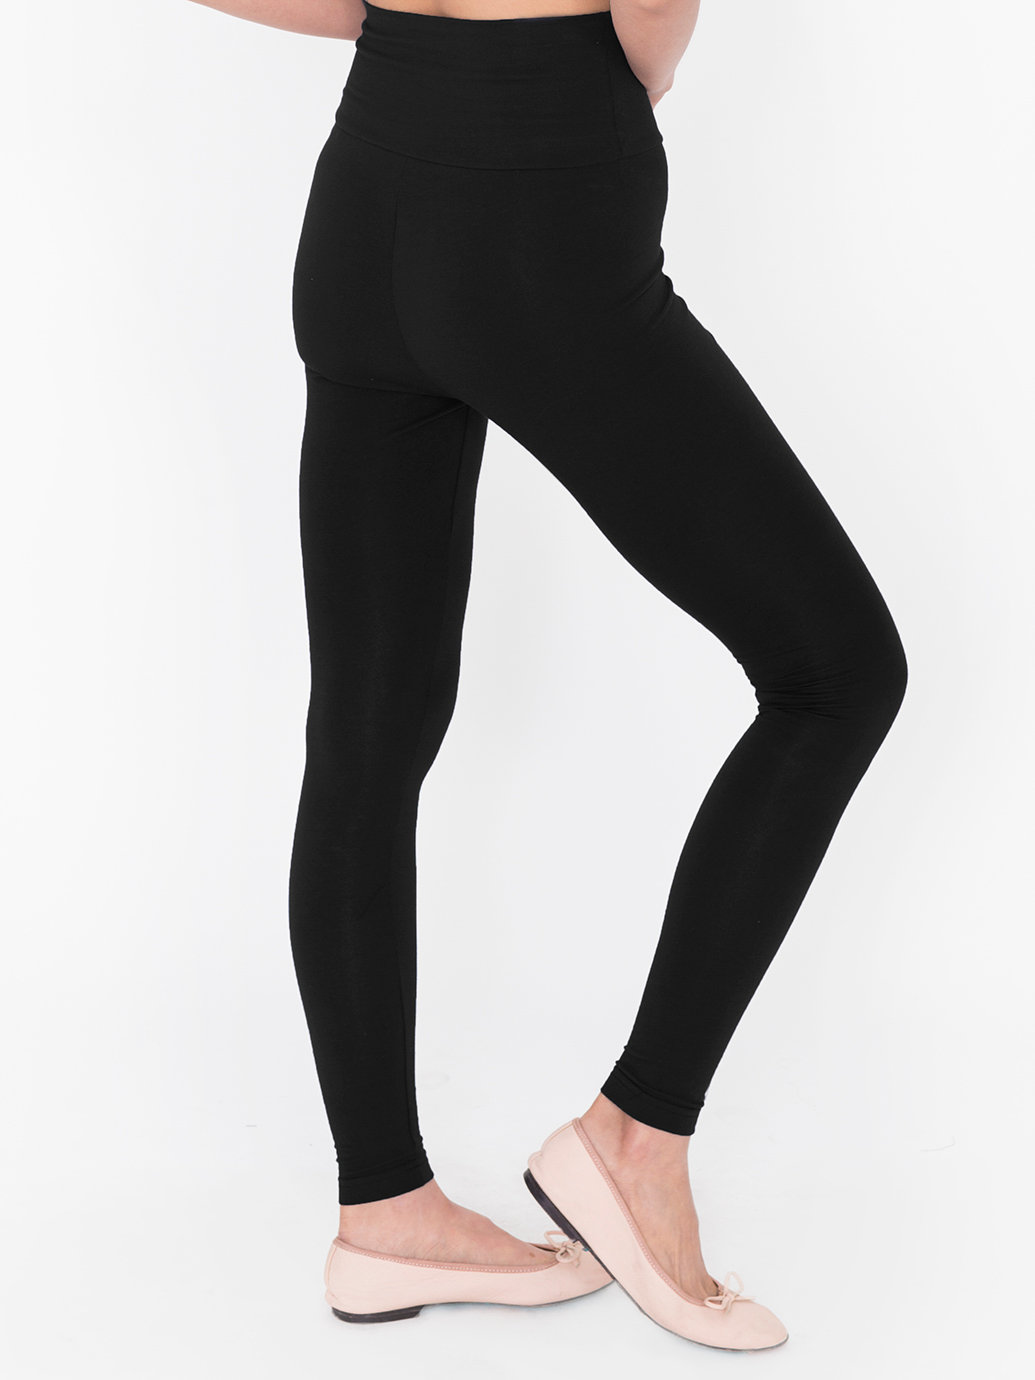 Black Cotton Leggings - Trendy Clothes